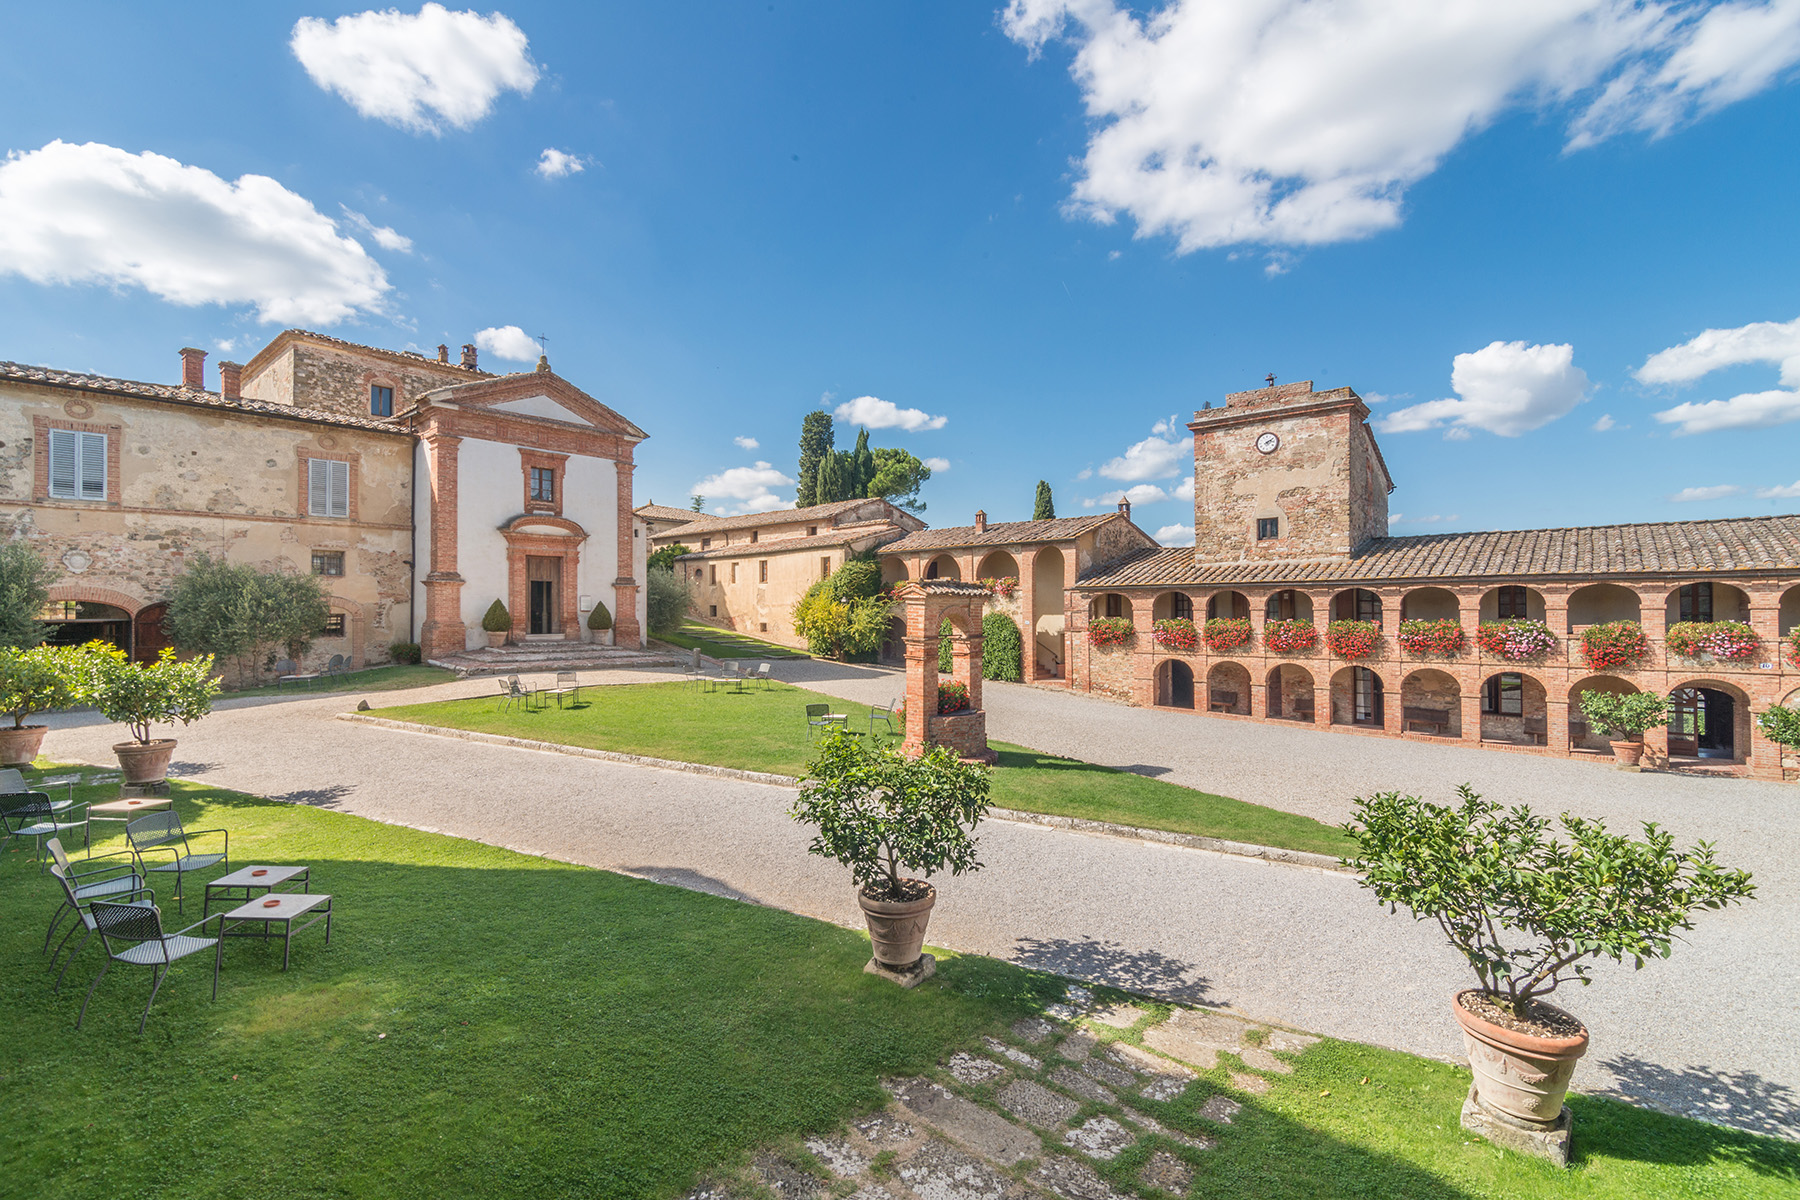 Additional photo for property listing at Amazing Boutique Hotel near Siena Sinalunga Sinalunga, Siena 53100 Italy